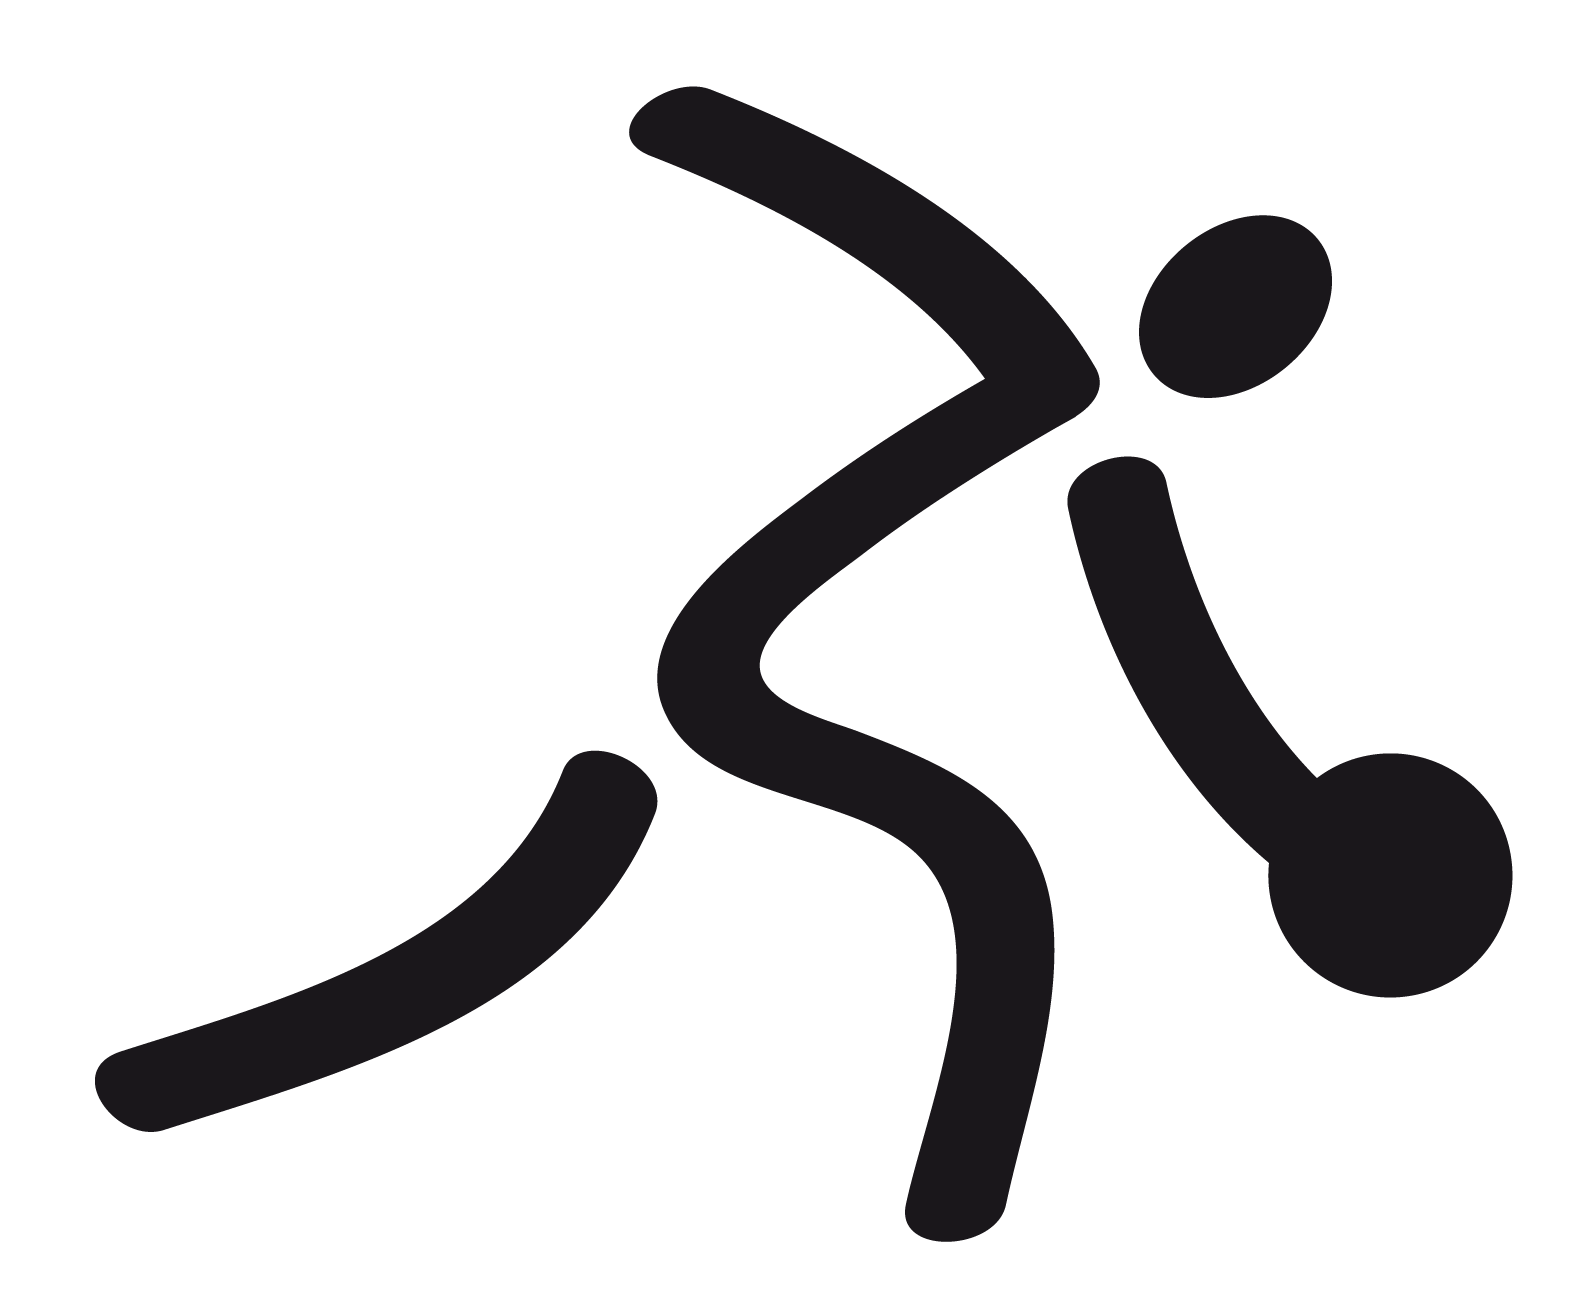 transparent download Collection of free Bowling clipart olympics